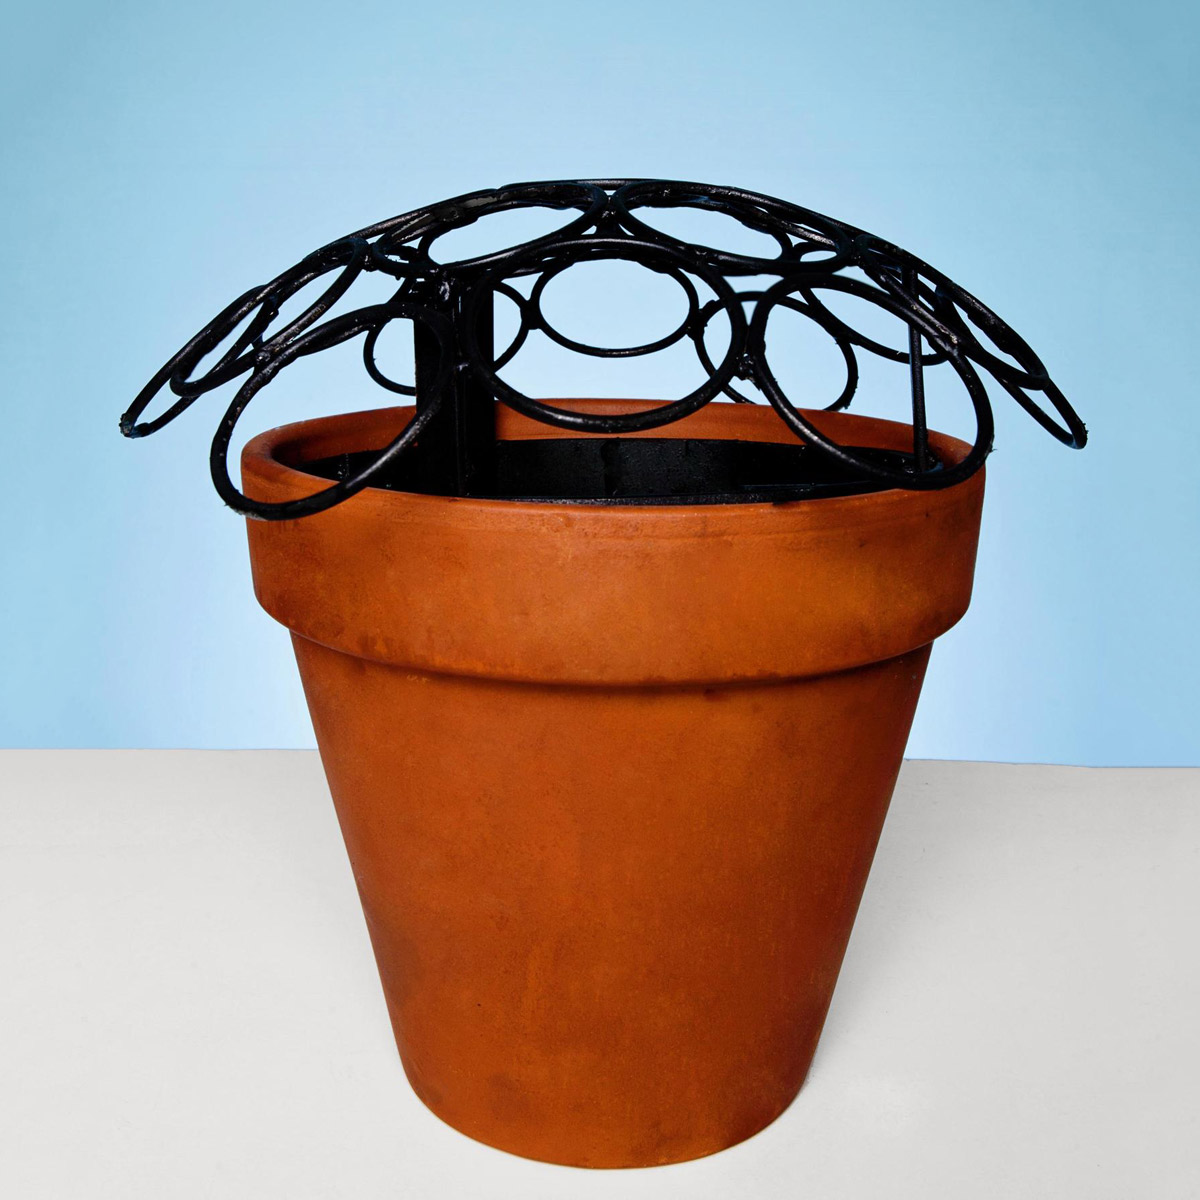 The Cupcake Rack Create A Cupcake Bouquet In A Flower Pot The